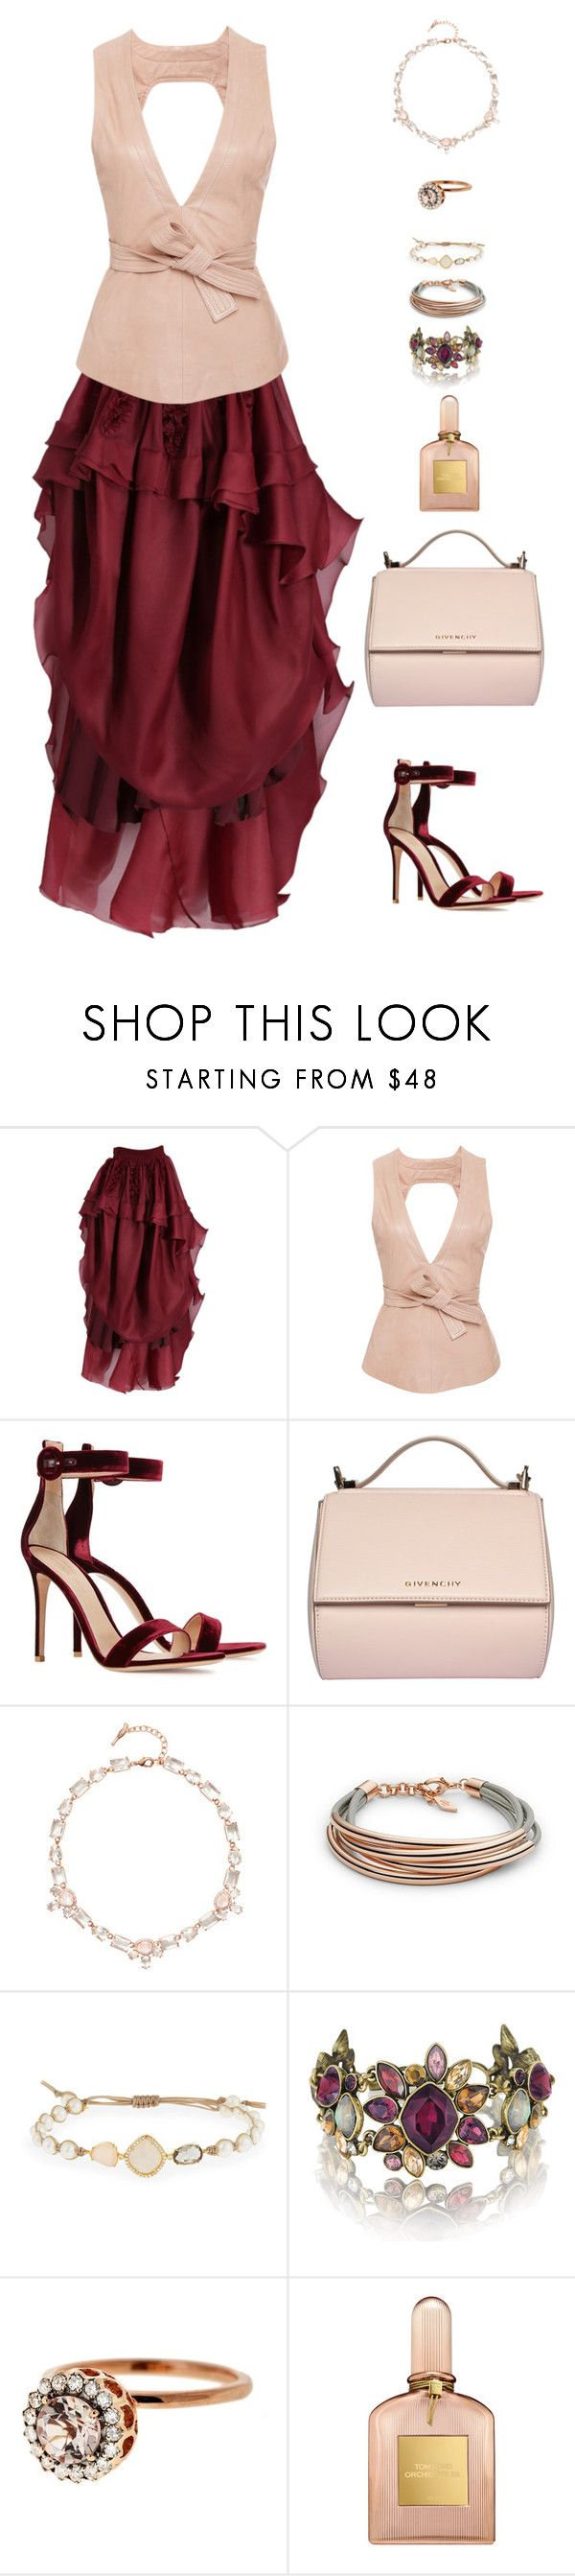 """""""Untitled #678"""" by stacy-hardy ❤ liked on Polyvore featuring Antonio Berardi, Marissa Webb, Gianvito Rossi, Givenchy, Chloe + Isabel, FOSSIL, Tai, Selim Mouzannar and Tom Ford"""